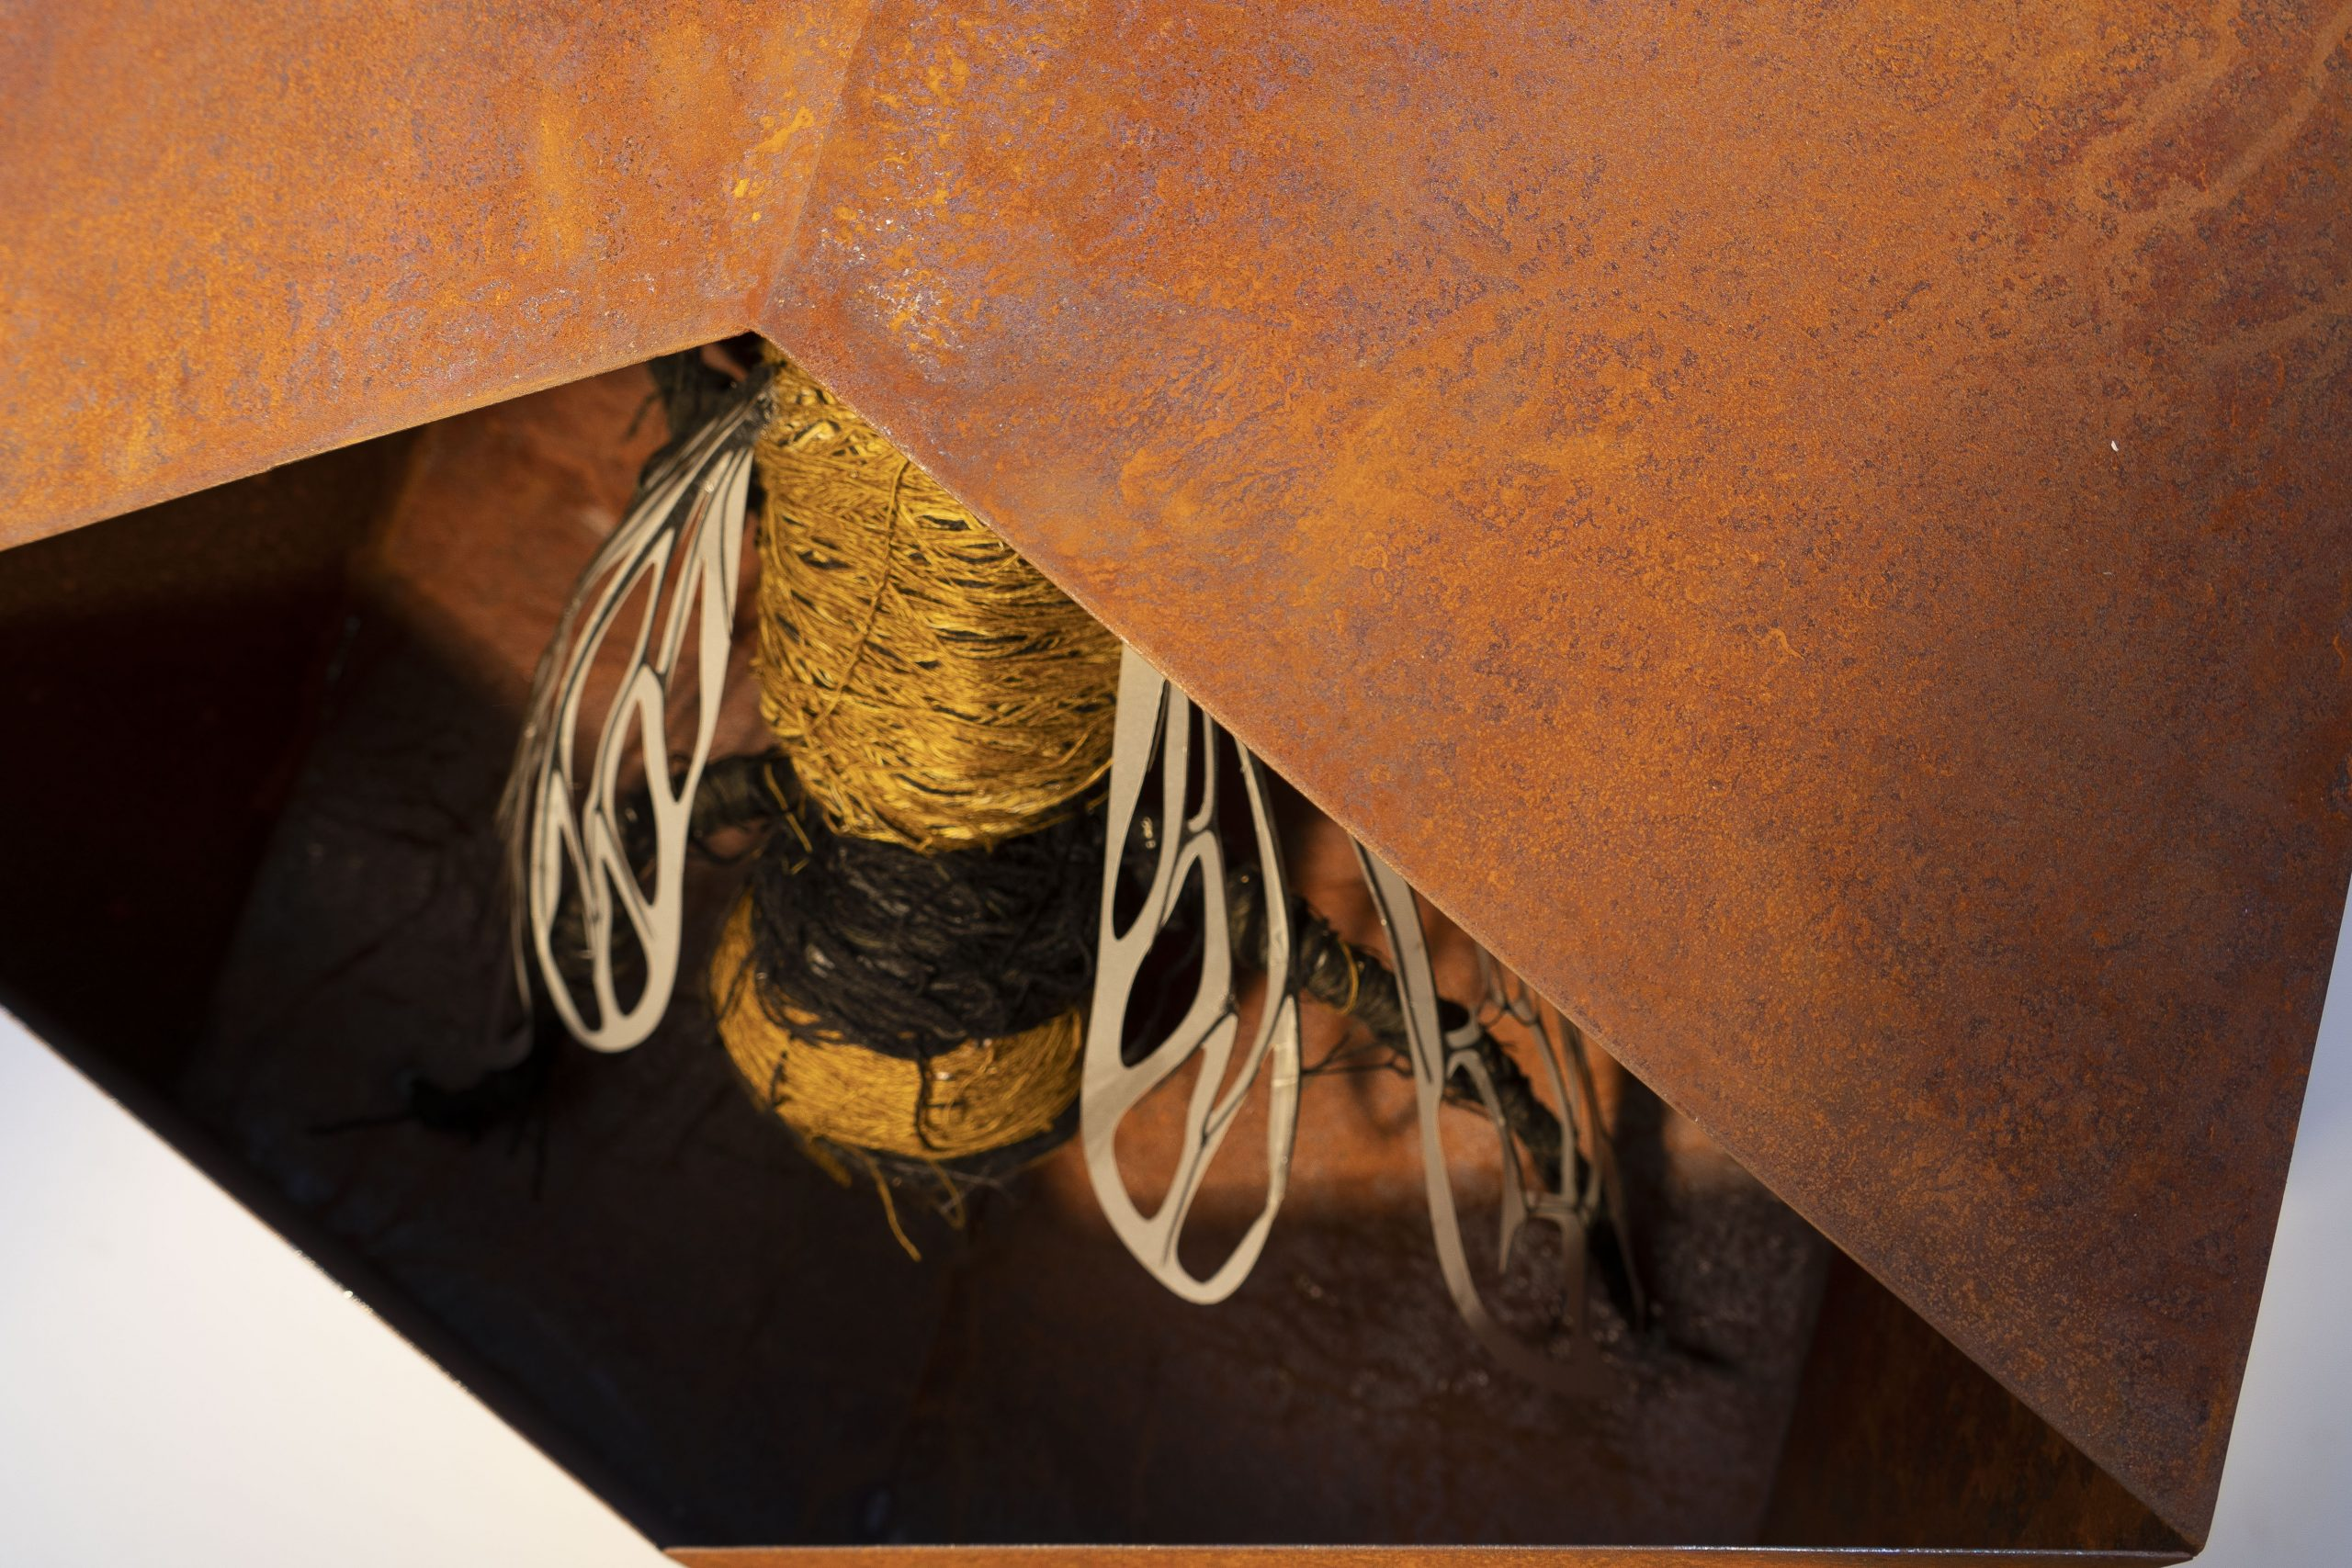 Overworked bee is a contemporary sculpture with a bee made from cotton in a rusty enclosure